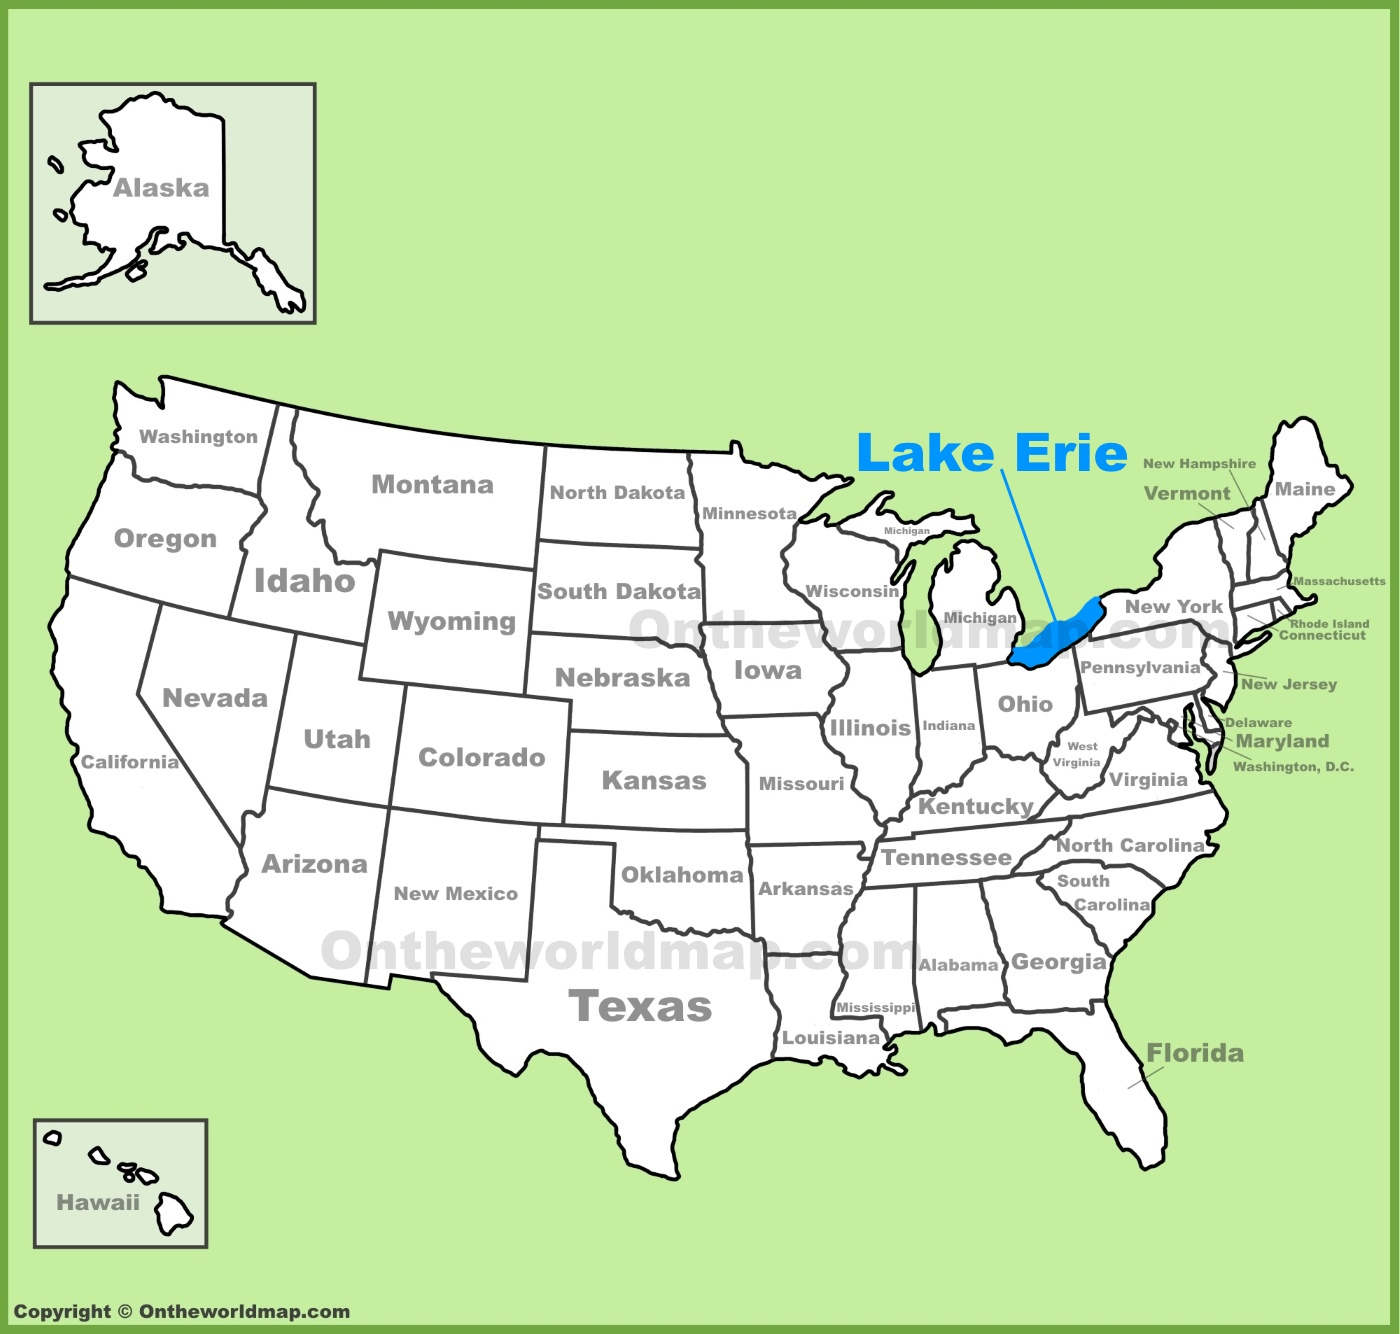 Lake Erie Map Lake Erie location on the U.S. Map Lake Erie Map